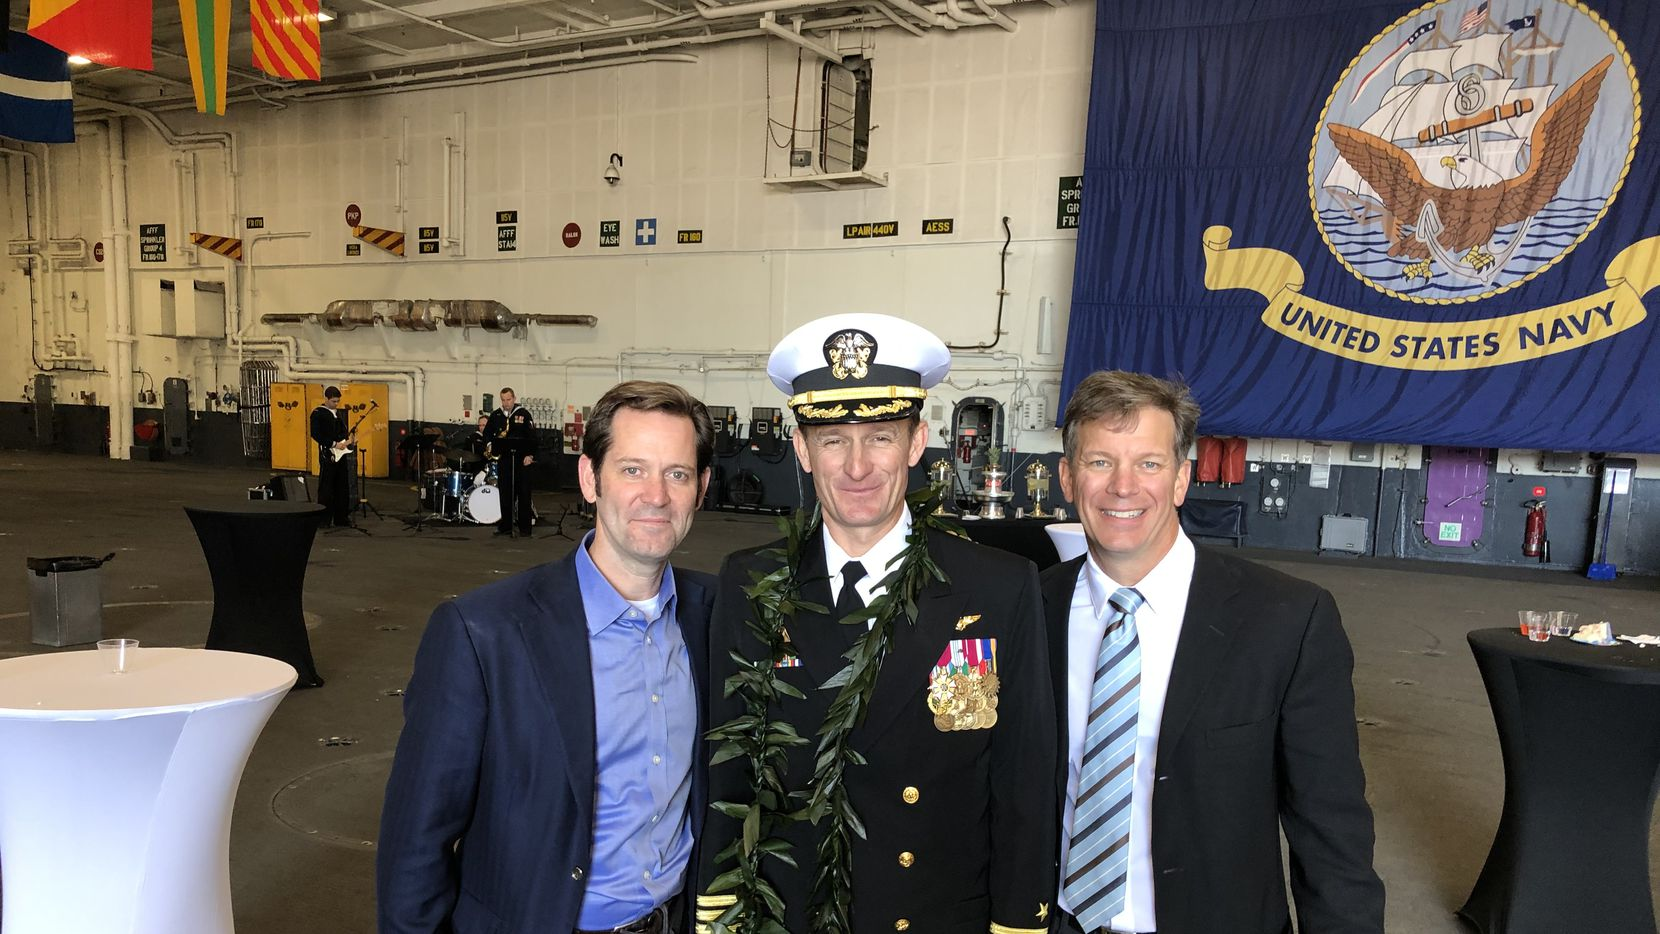 Captain Brett Crozier (center) with Naval Academy classmates Brett Odom (left) and Mark Roppolo (right) on Nov. 1, 2019, after Crozier took command of the USS Theodore Roosevelt.